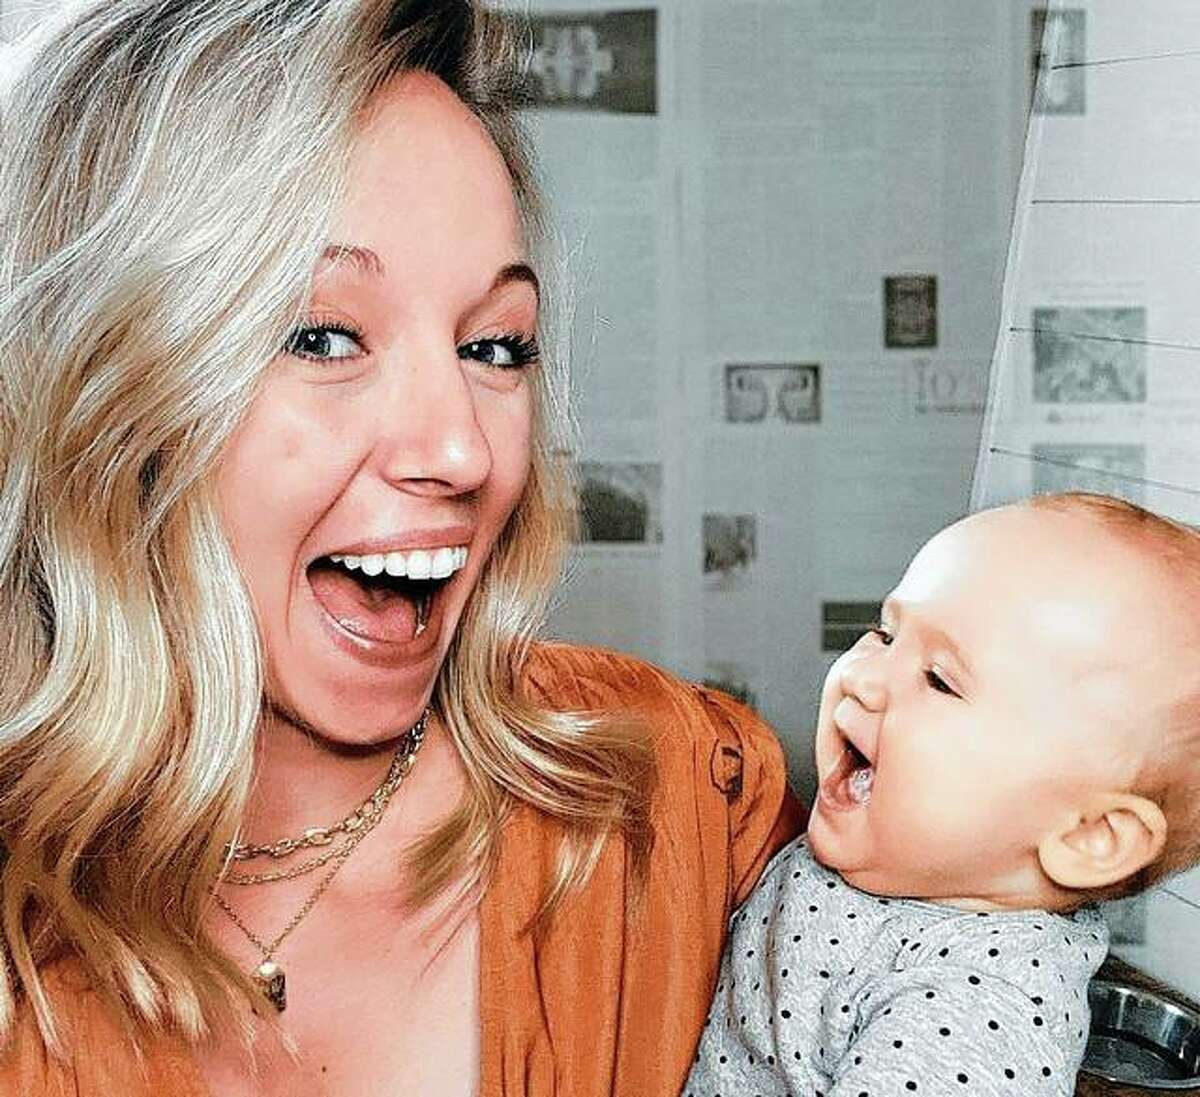 TikTok creator Hayley Wombles holds 10-month-old Madilyn. Wombles has accumulated more than 400,000 followers on the social media platform, particularly for her advice video on motherhood.